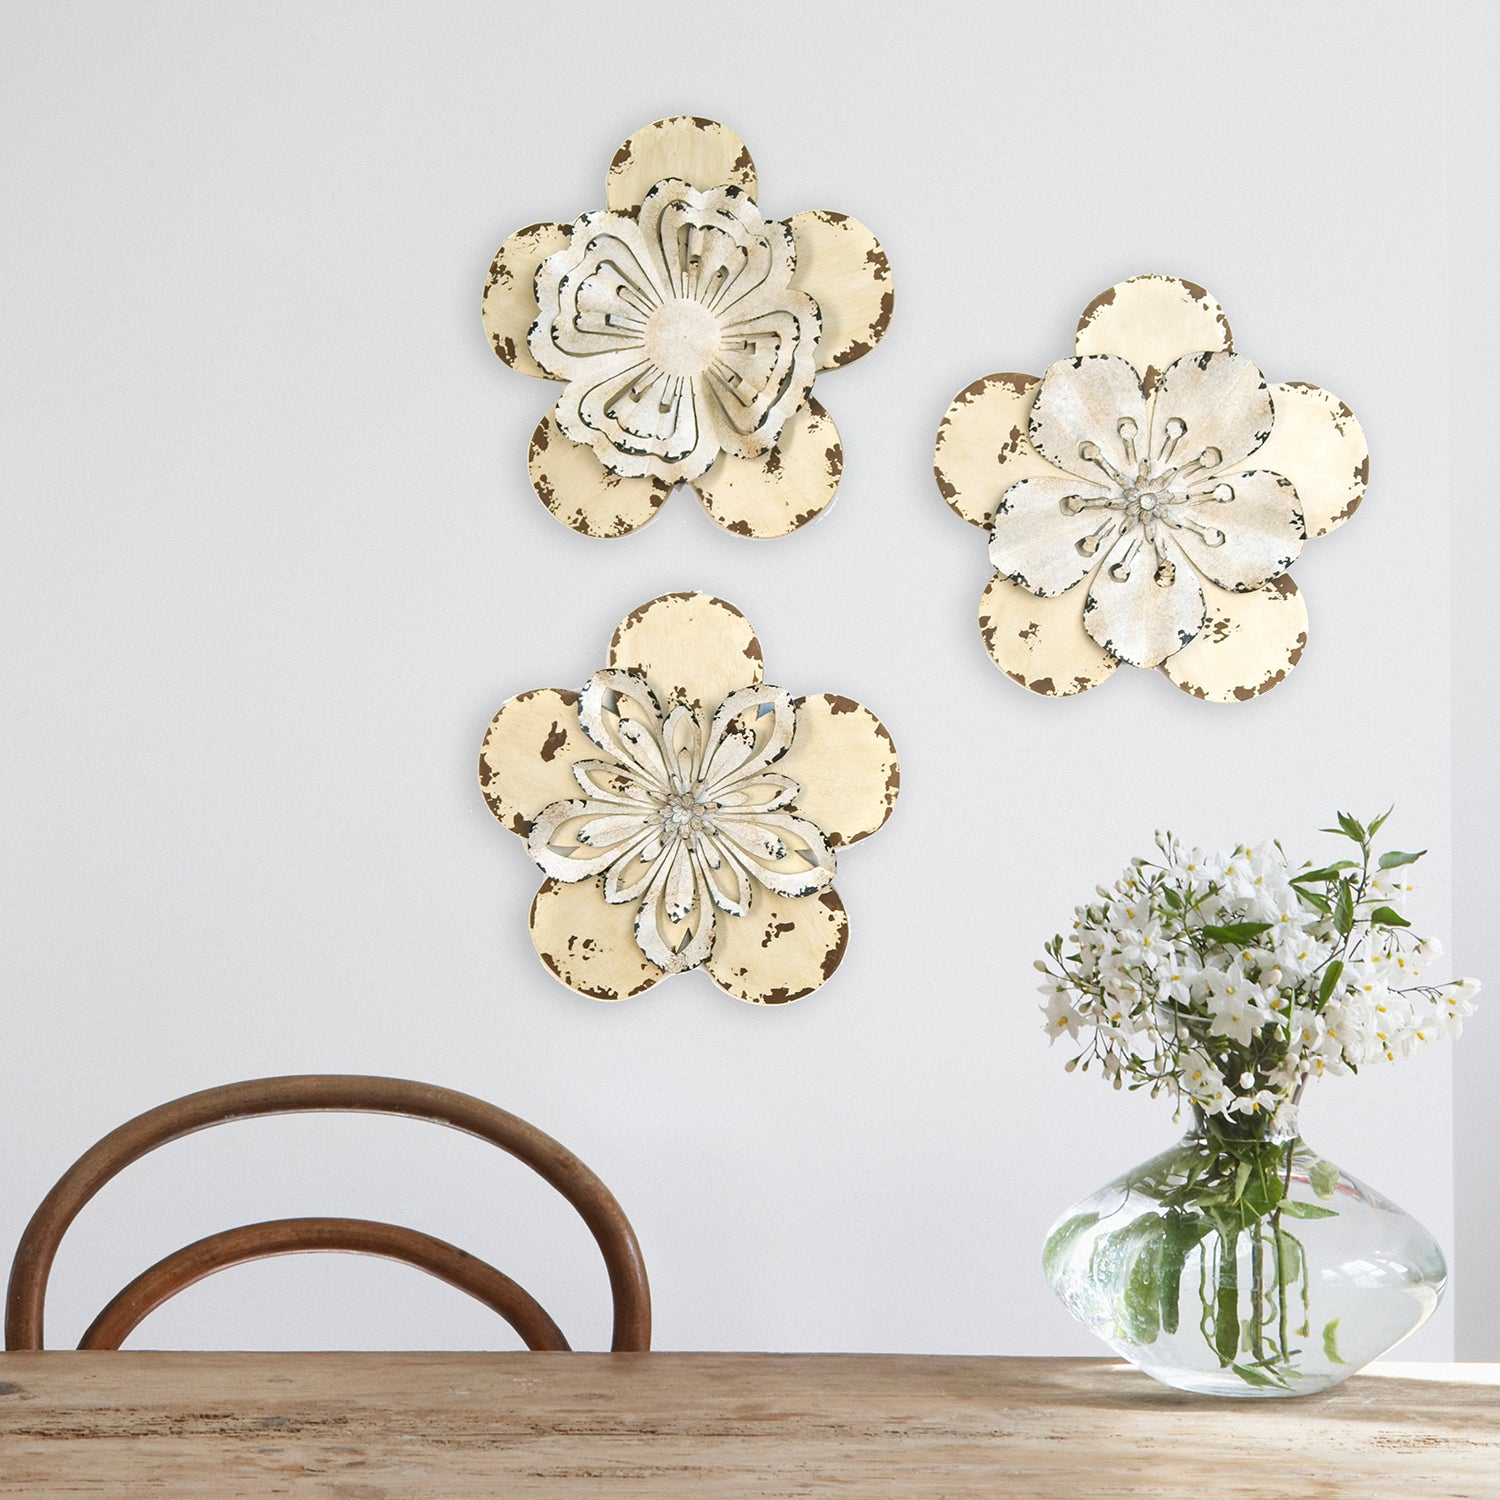 Stratton Home Decor 3 Piece Set Rustic Flowers Wall Decor Throughout Metal Flower Wall Decor (Set Of 3) (View 8 of 30)